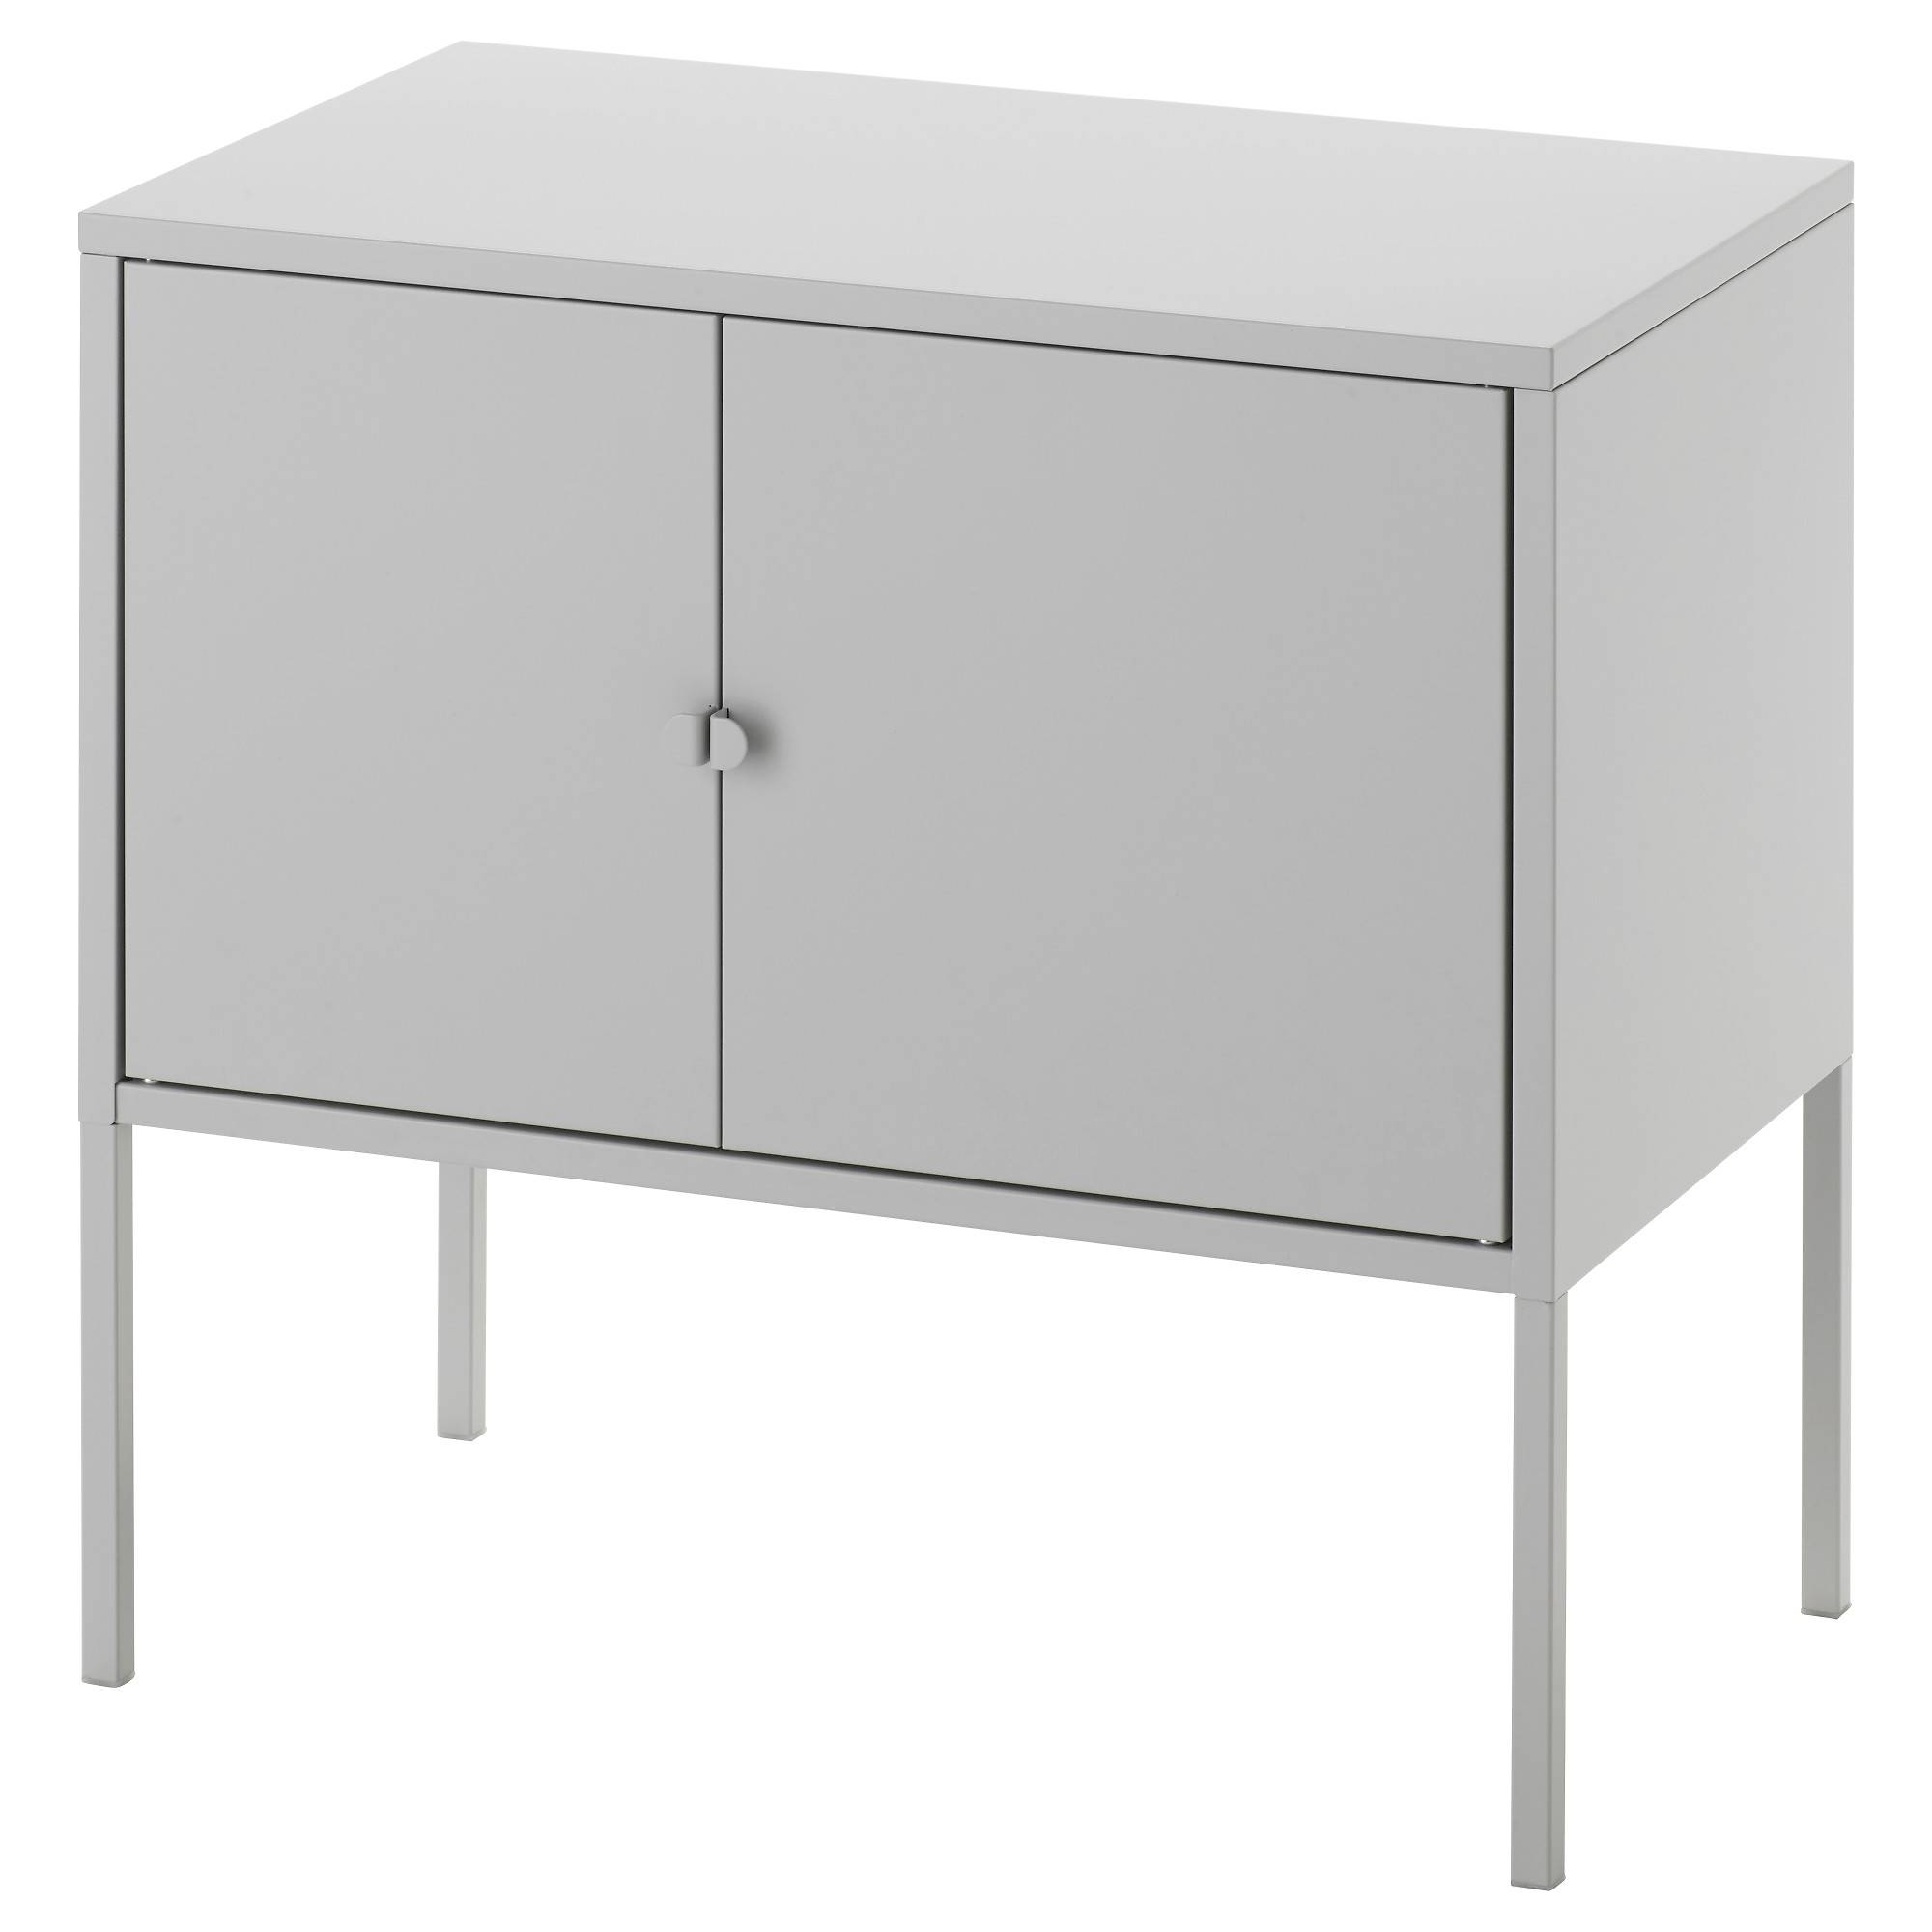 Lixhult Cabinet Metal/grey 60X35 Cm - Ikea pertaining to Metal Sideboard Furniture (Image 24 of 30)